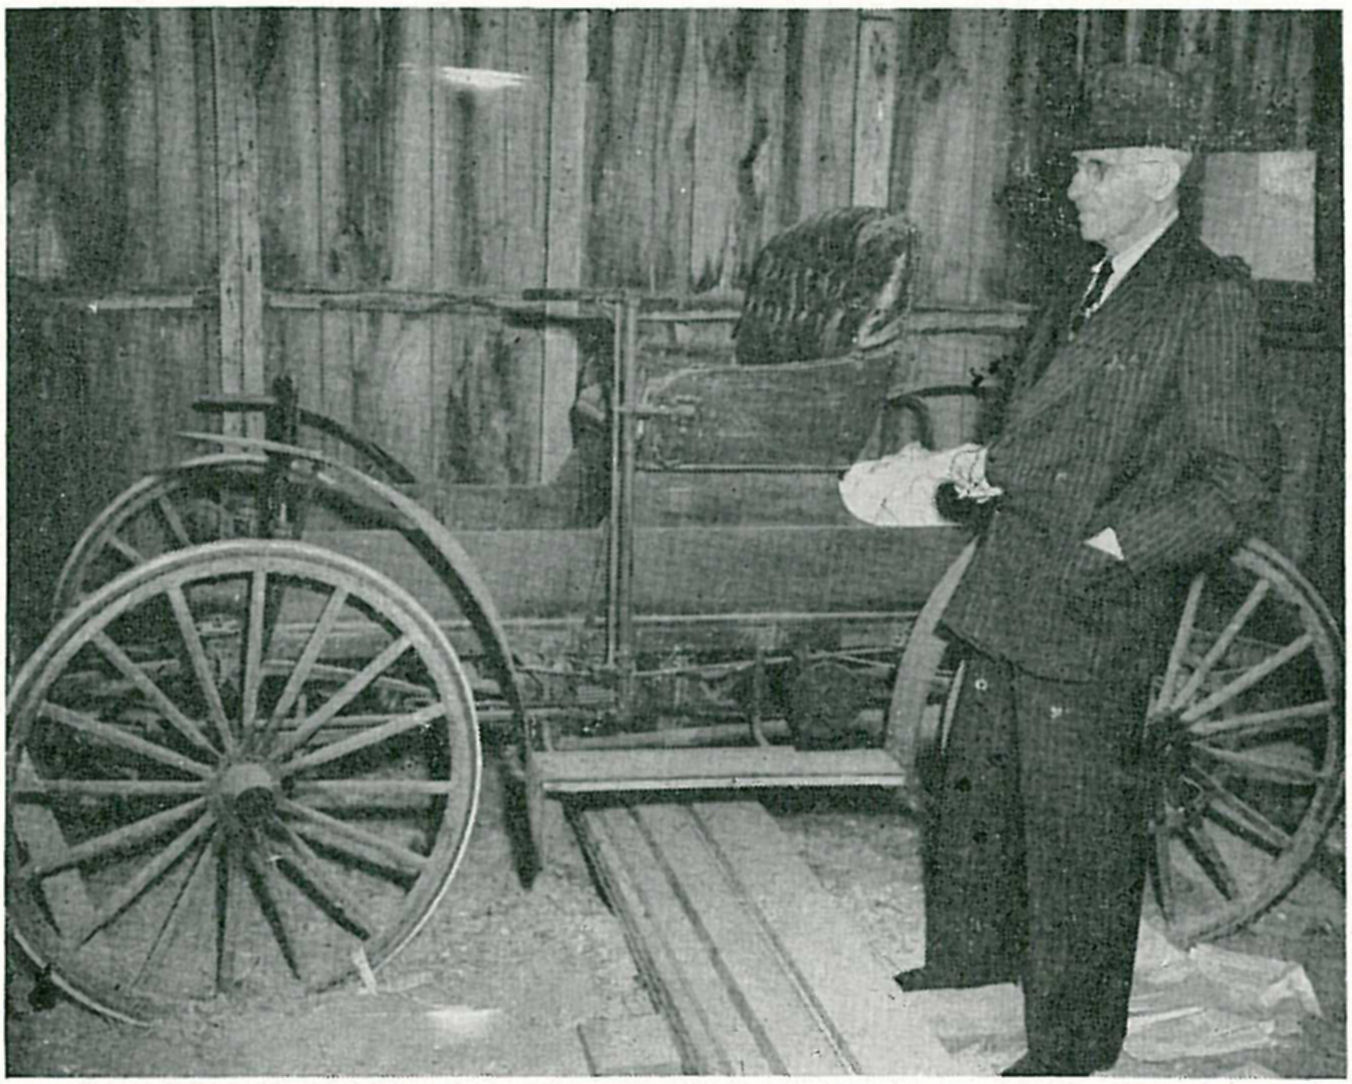 Alvaro S. Krotz and his Sears Motor Buggy. Click on the picture to see the full size.